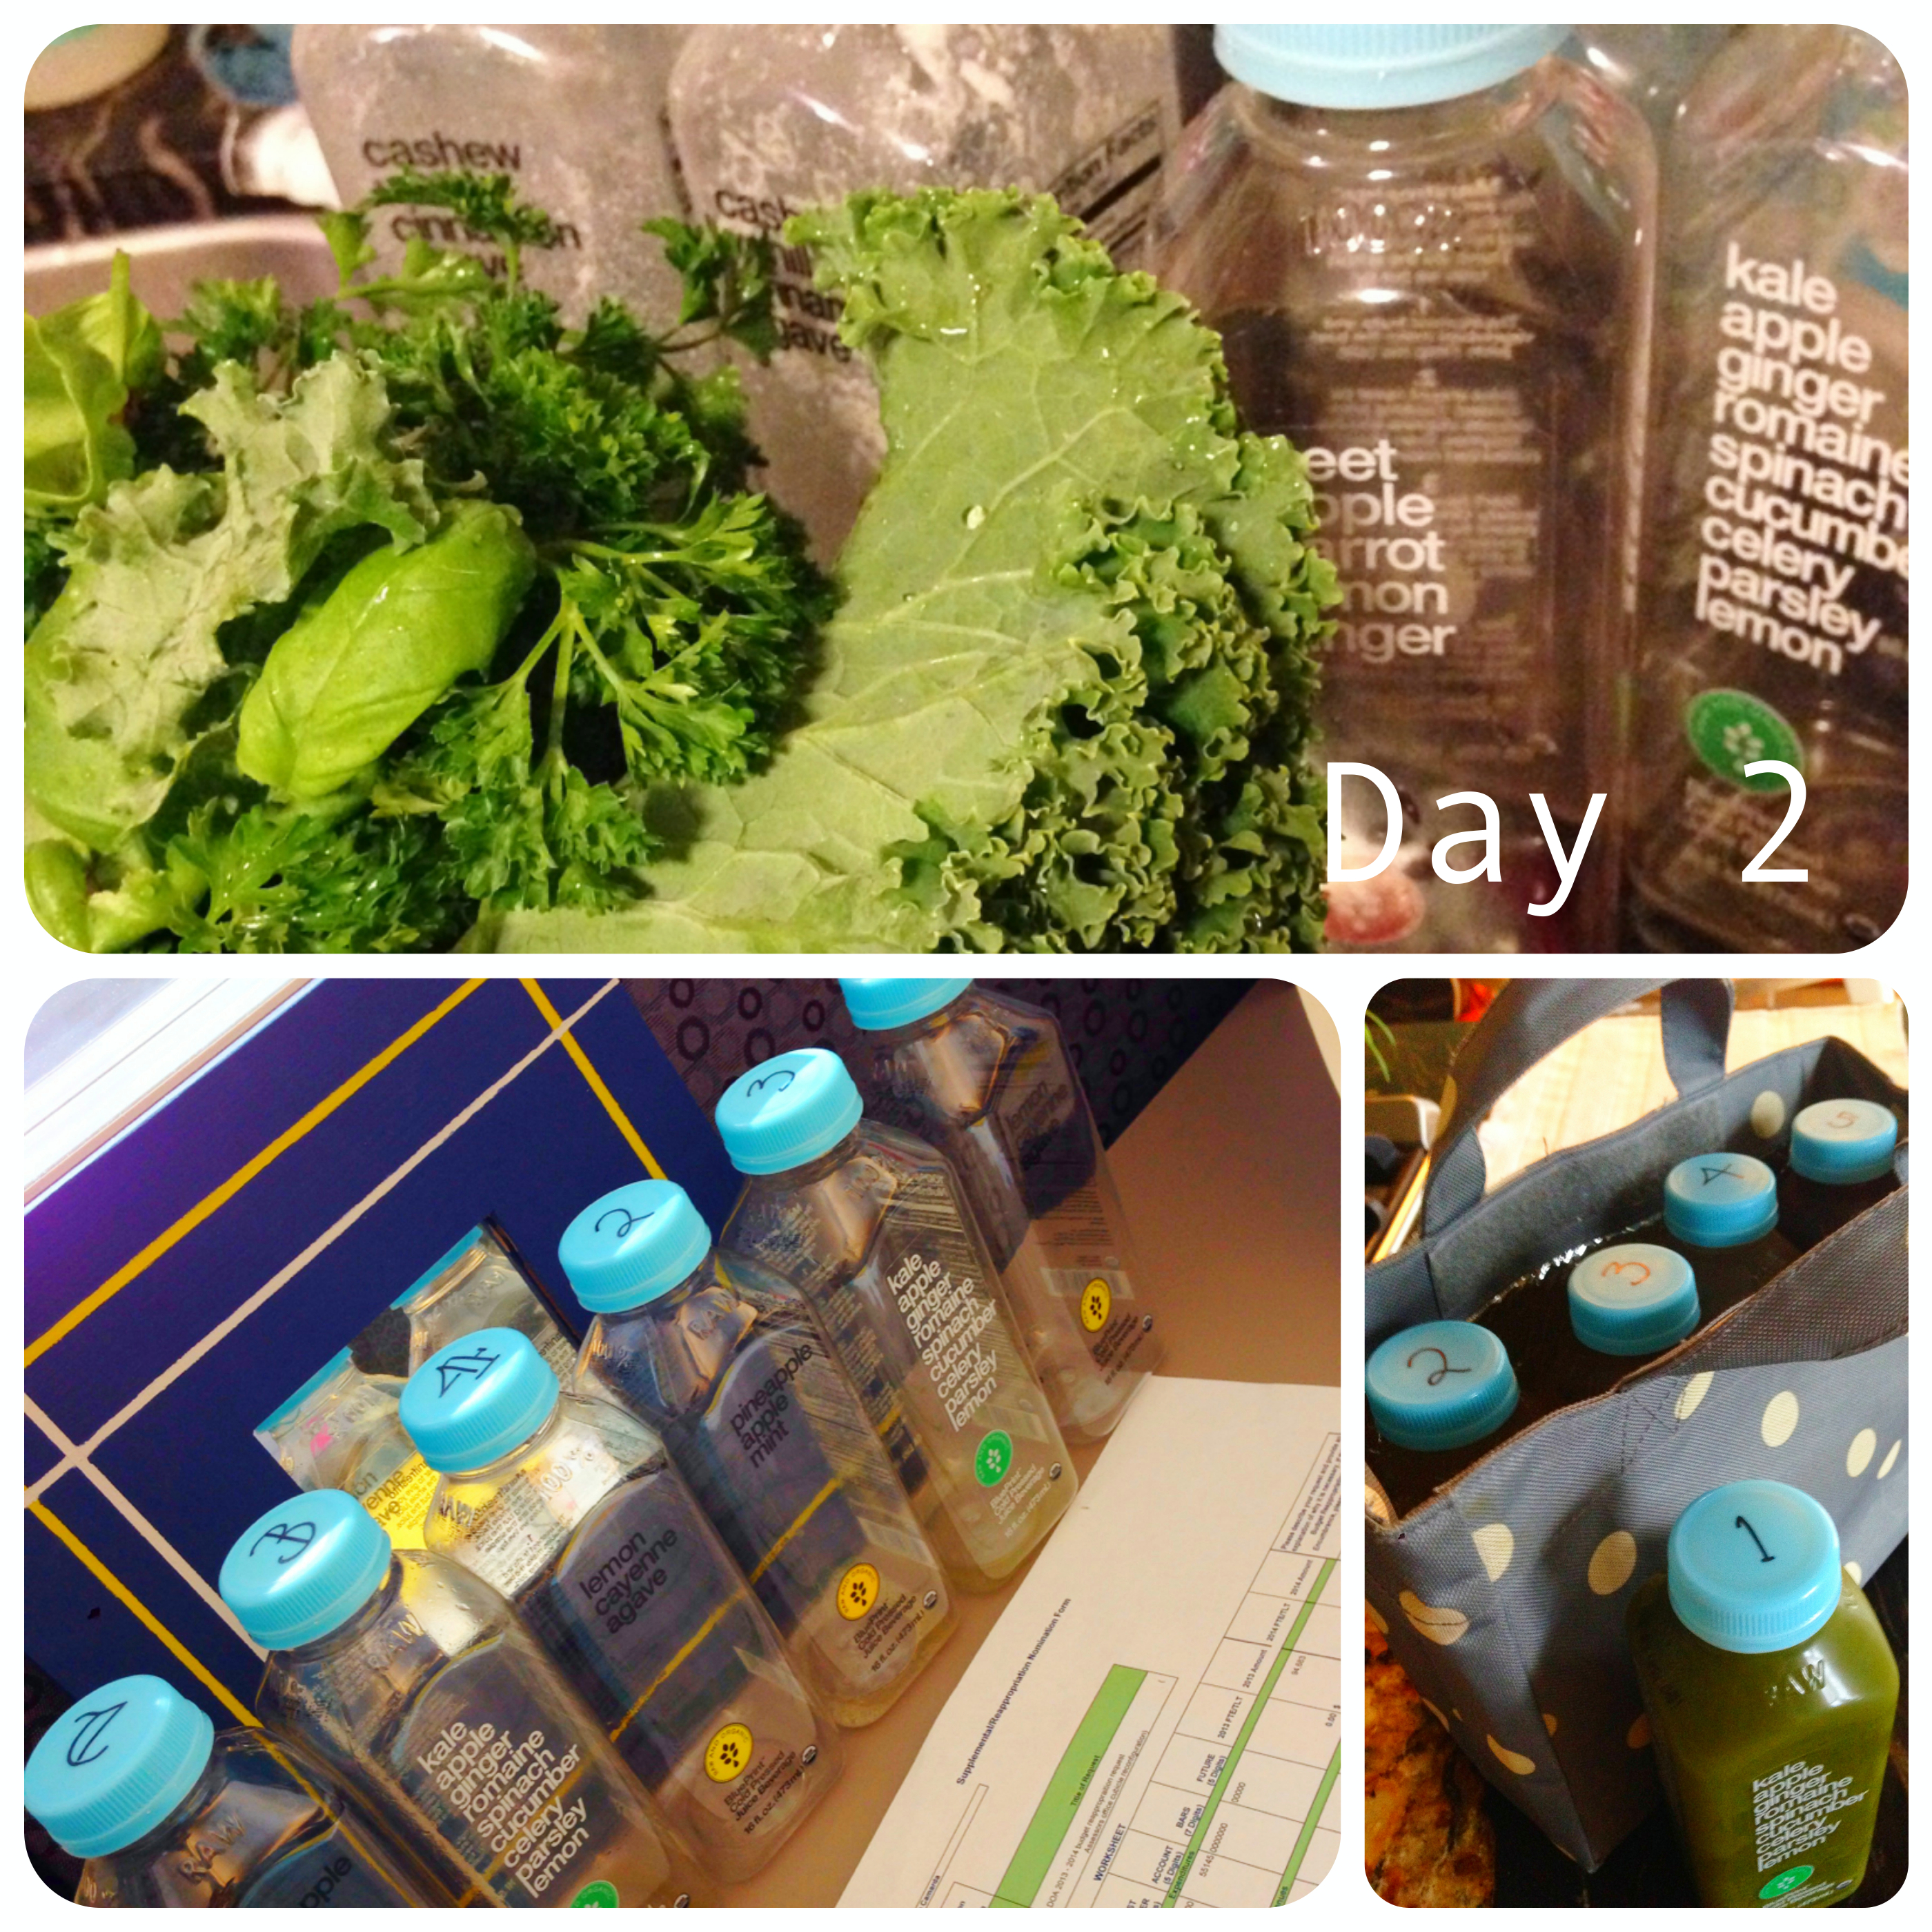 Juice fast blueprint for different food habits and unhappy day 2 when the house rabbit got more fresh greens and solid food than anyone malvernweather Images